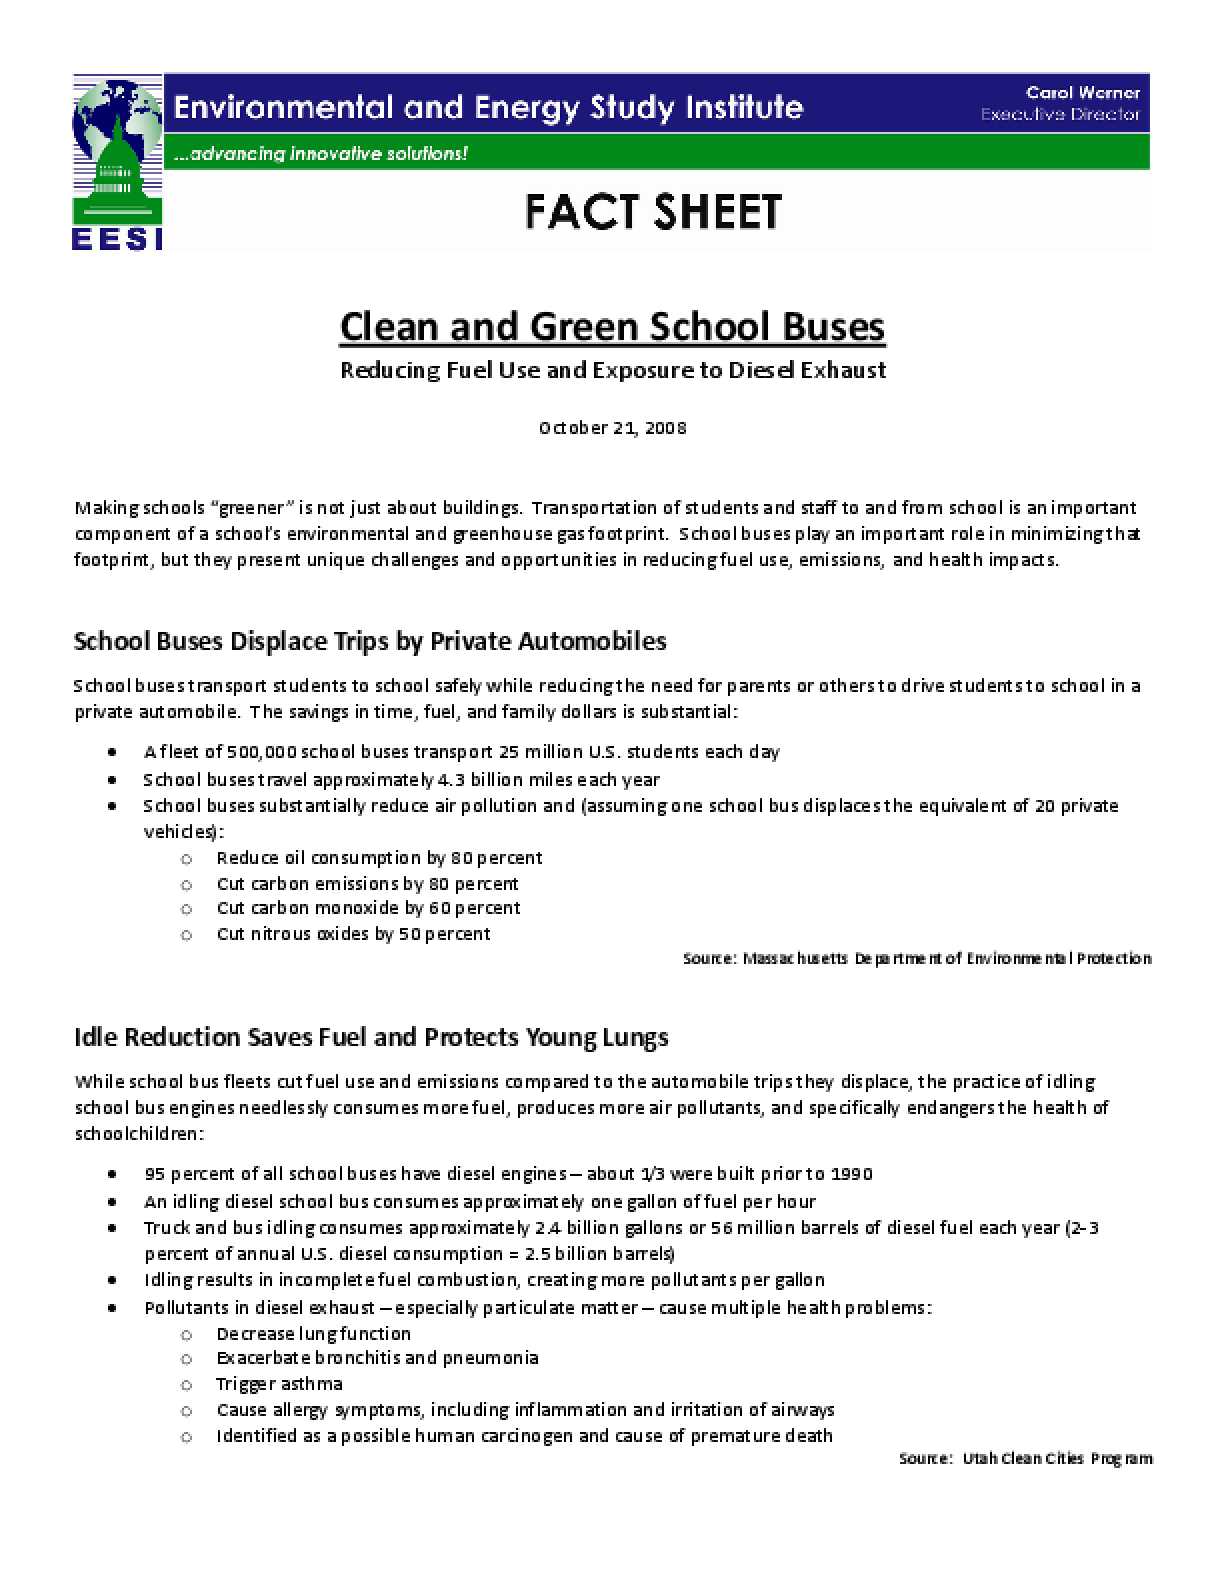 Clean and Green School Buses - Reducing Fuel Use and Exposure to Diesel Exhaust